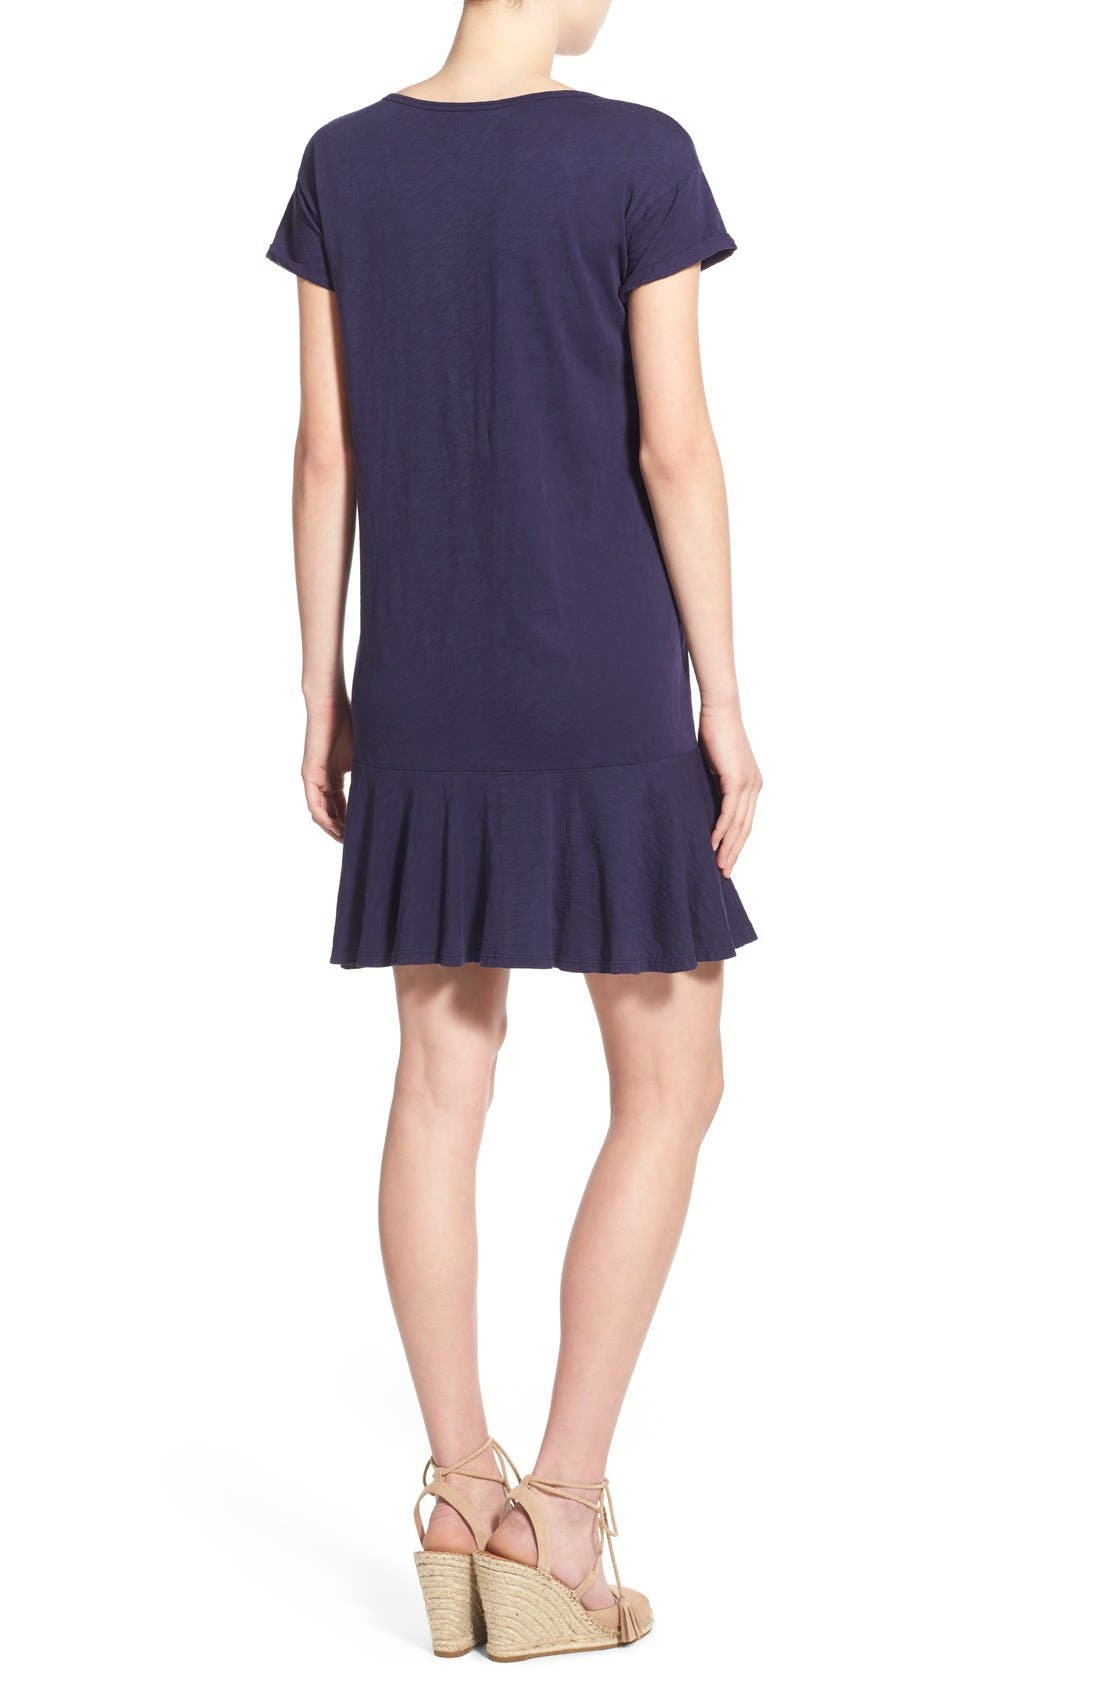 Alternate Image 2  - Velvet by Graham & Spencer Ruffle Hem Cotton Tee Dress